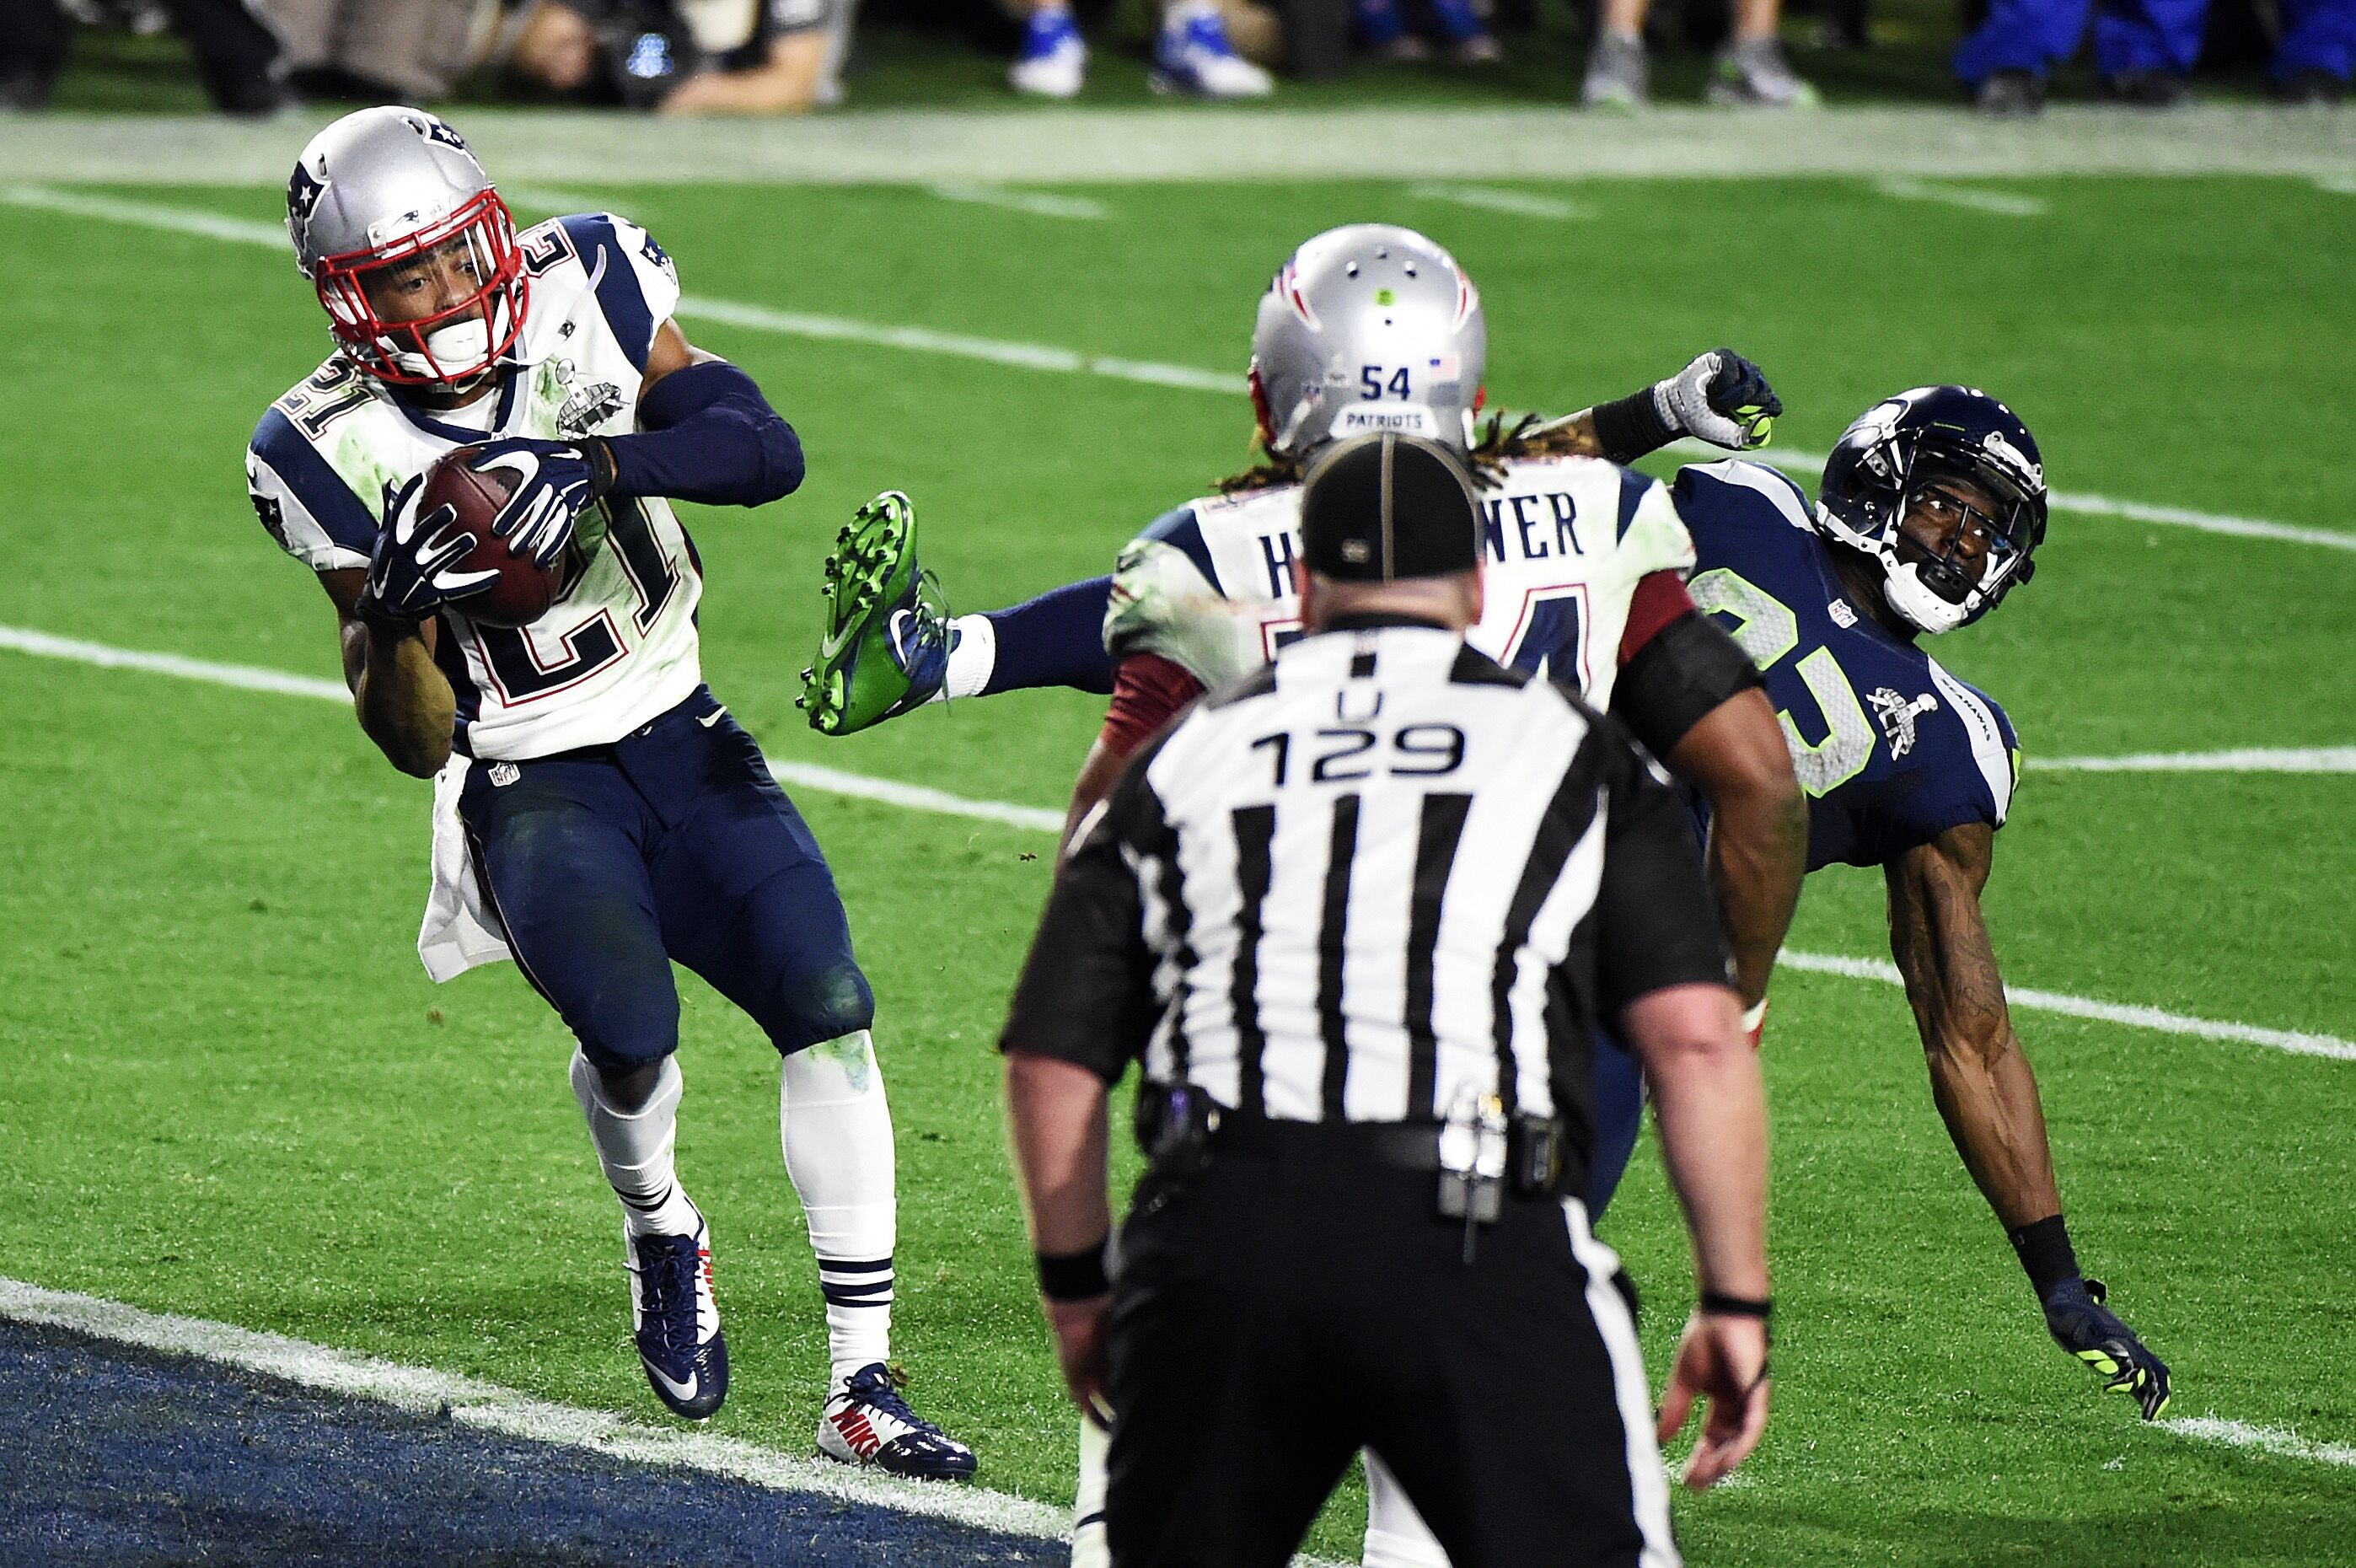 462642436-super-bowl-xlix-new-england-patriots-v-seattle-seahawks.jpg